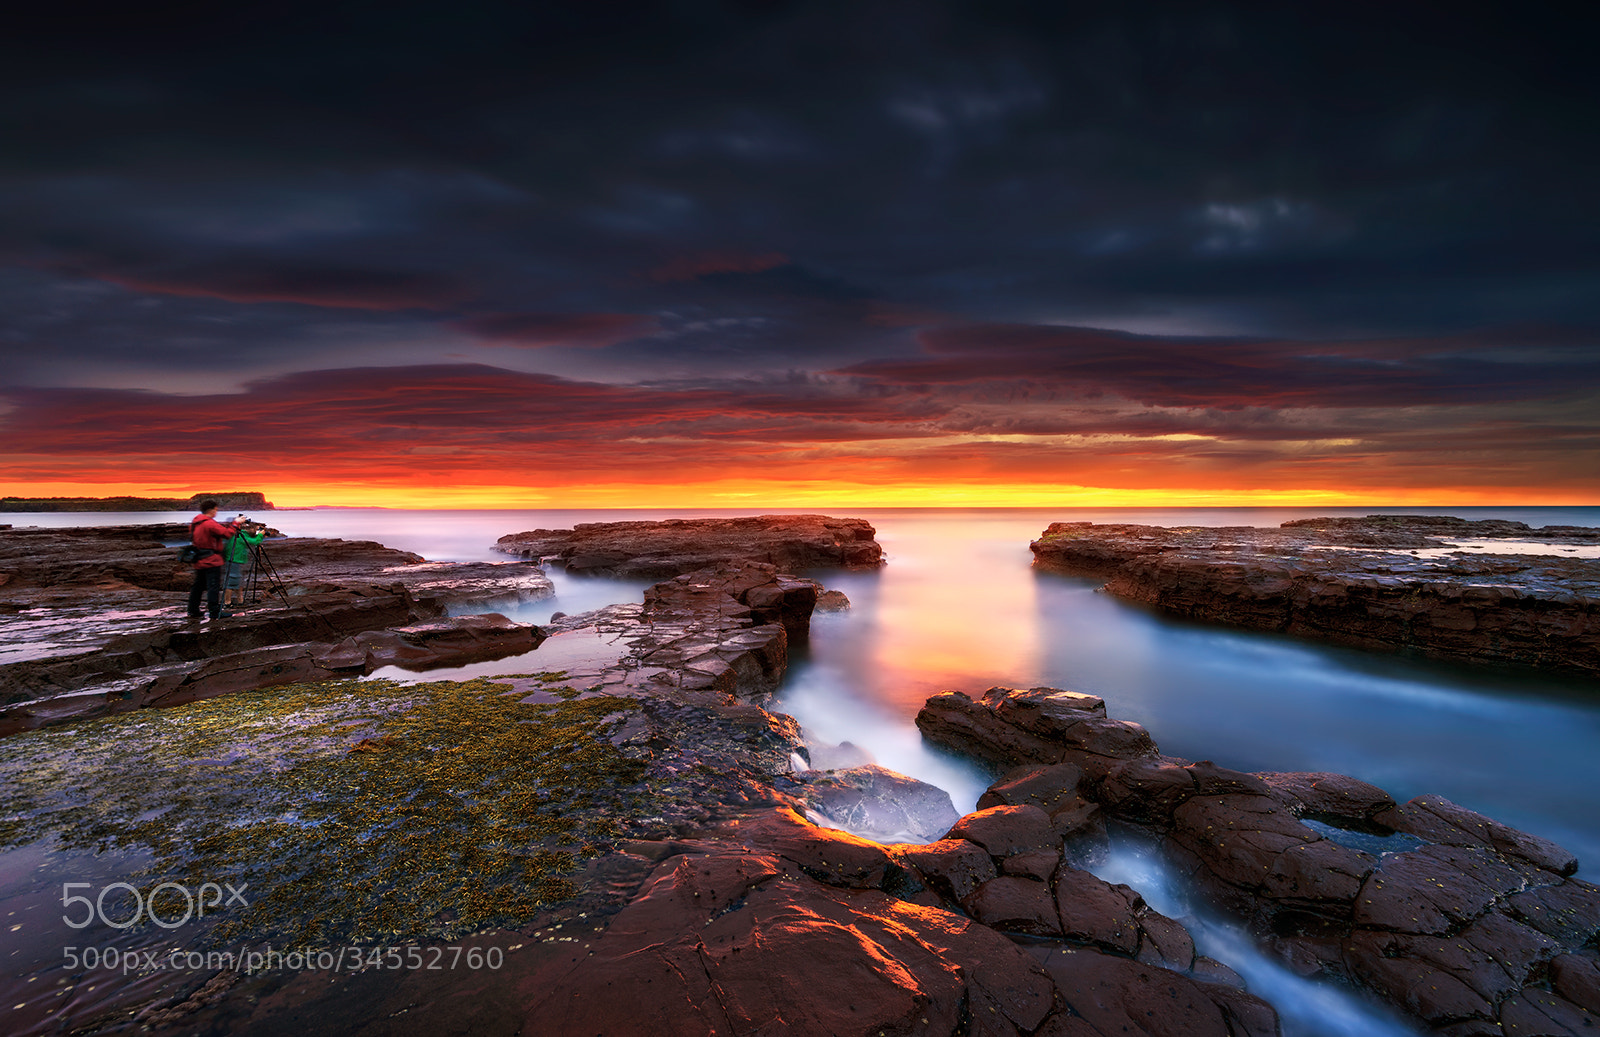 Photograph Pacific in May by Goff Kitsawad on 500px